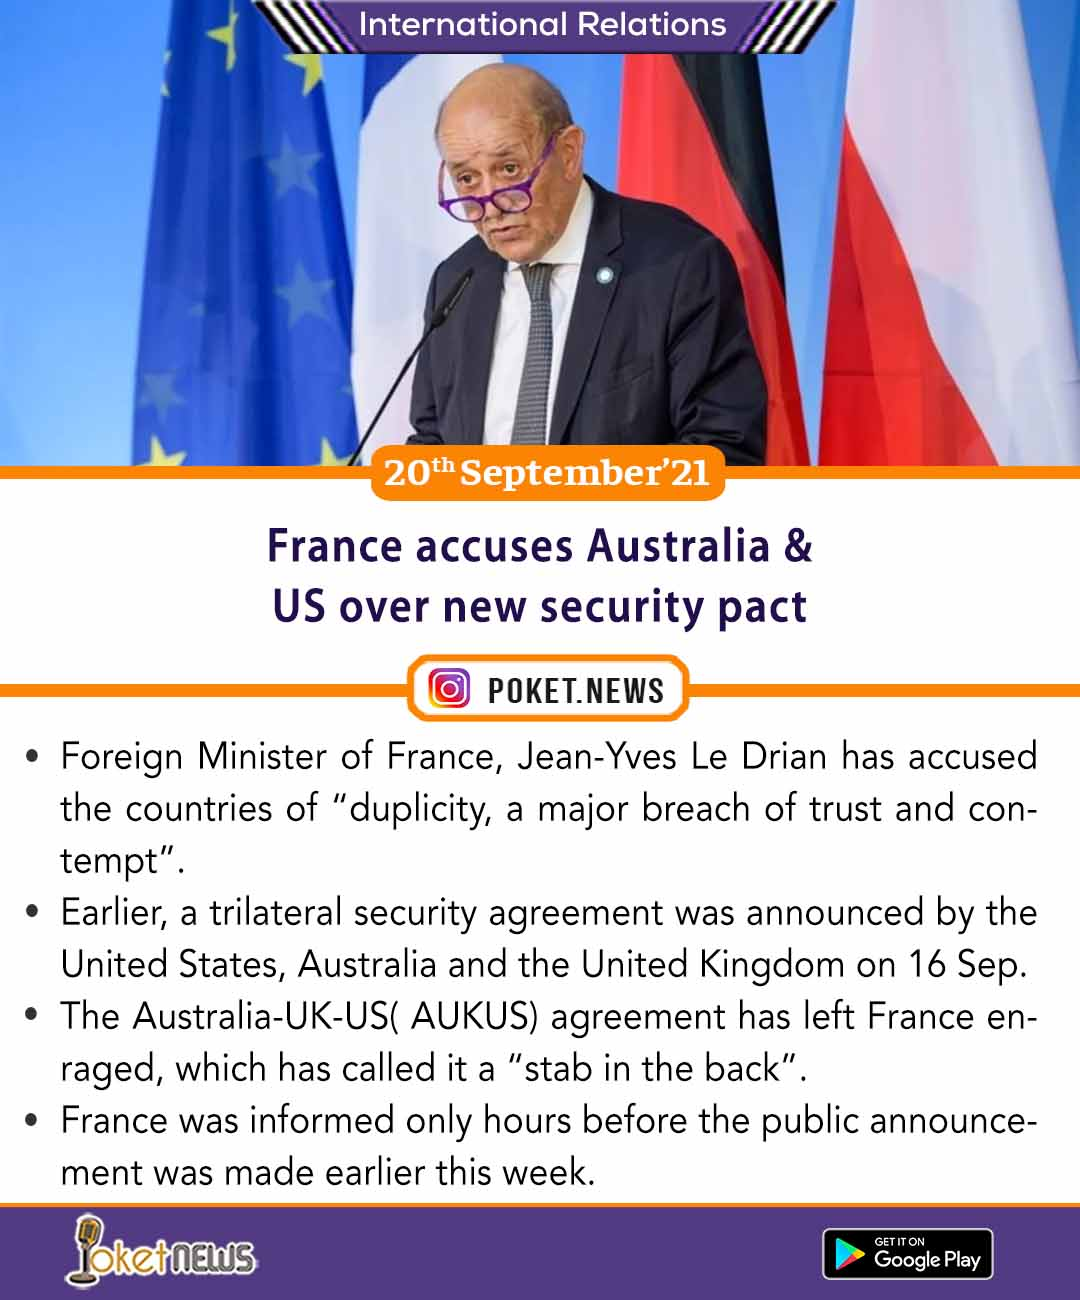 France accuses Australia & US over new security pact